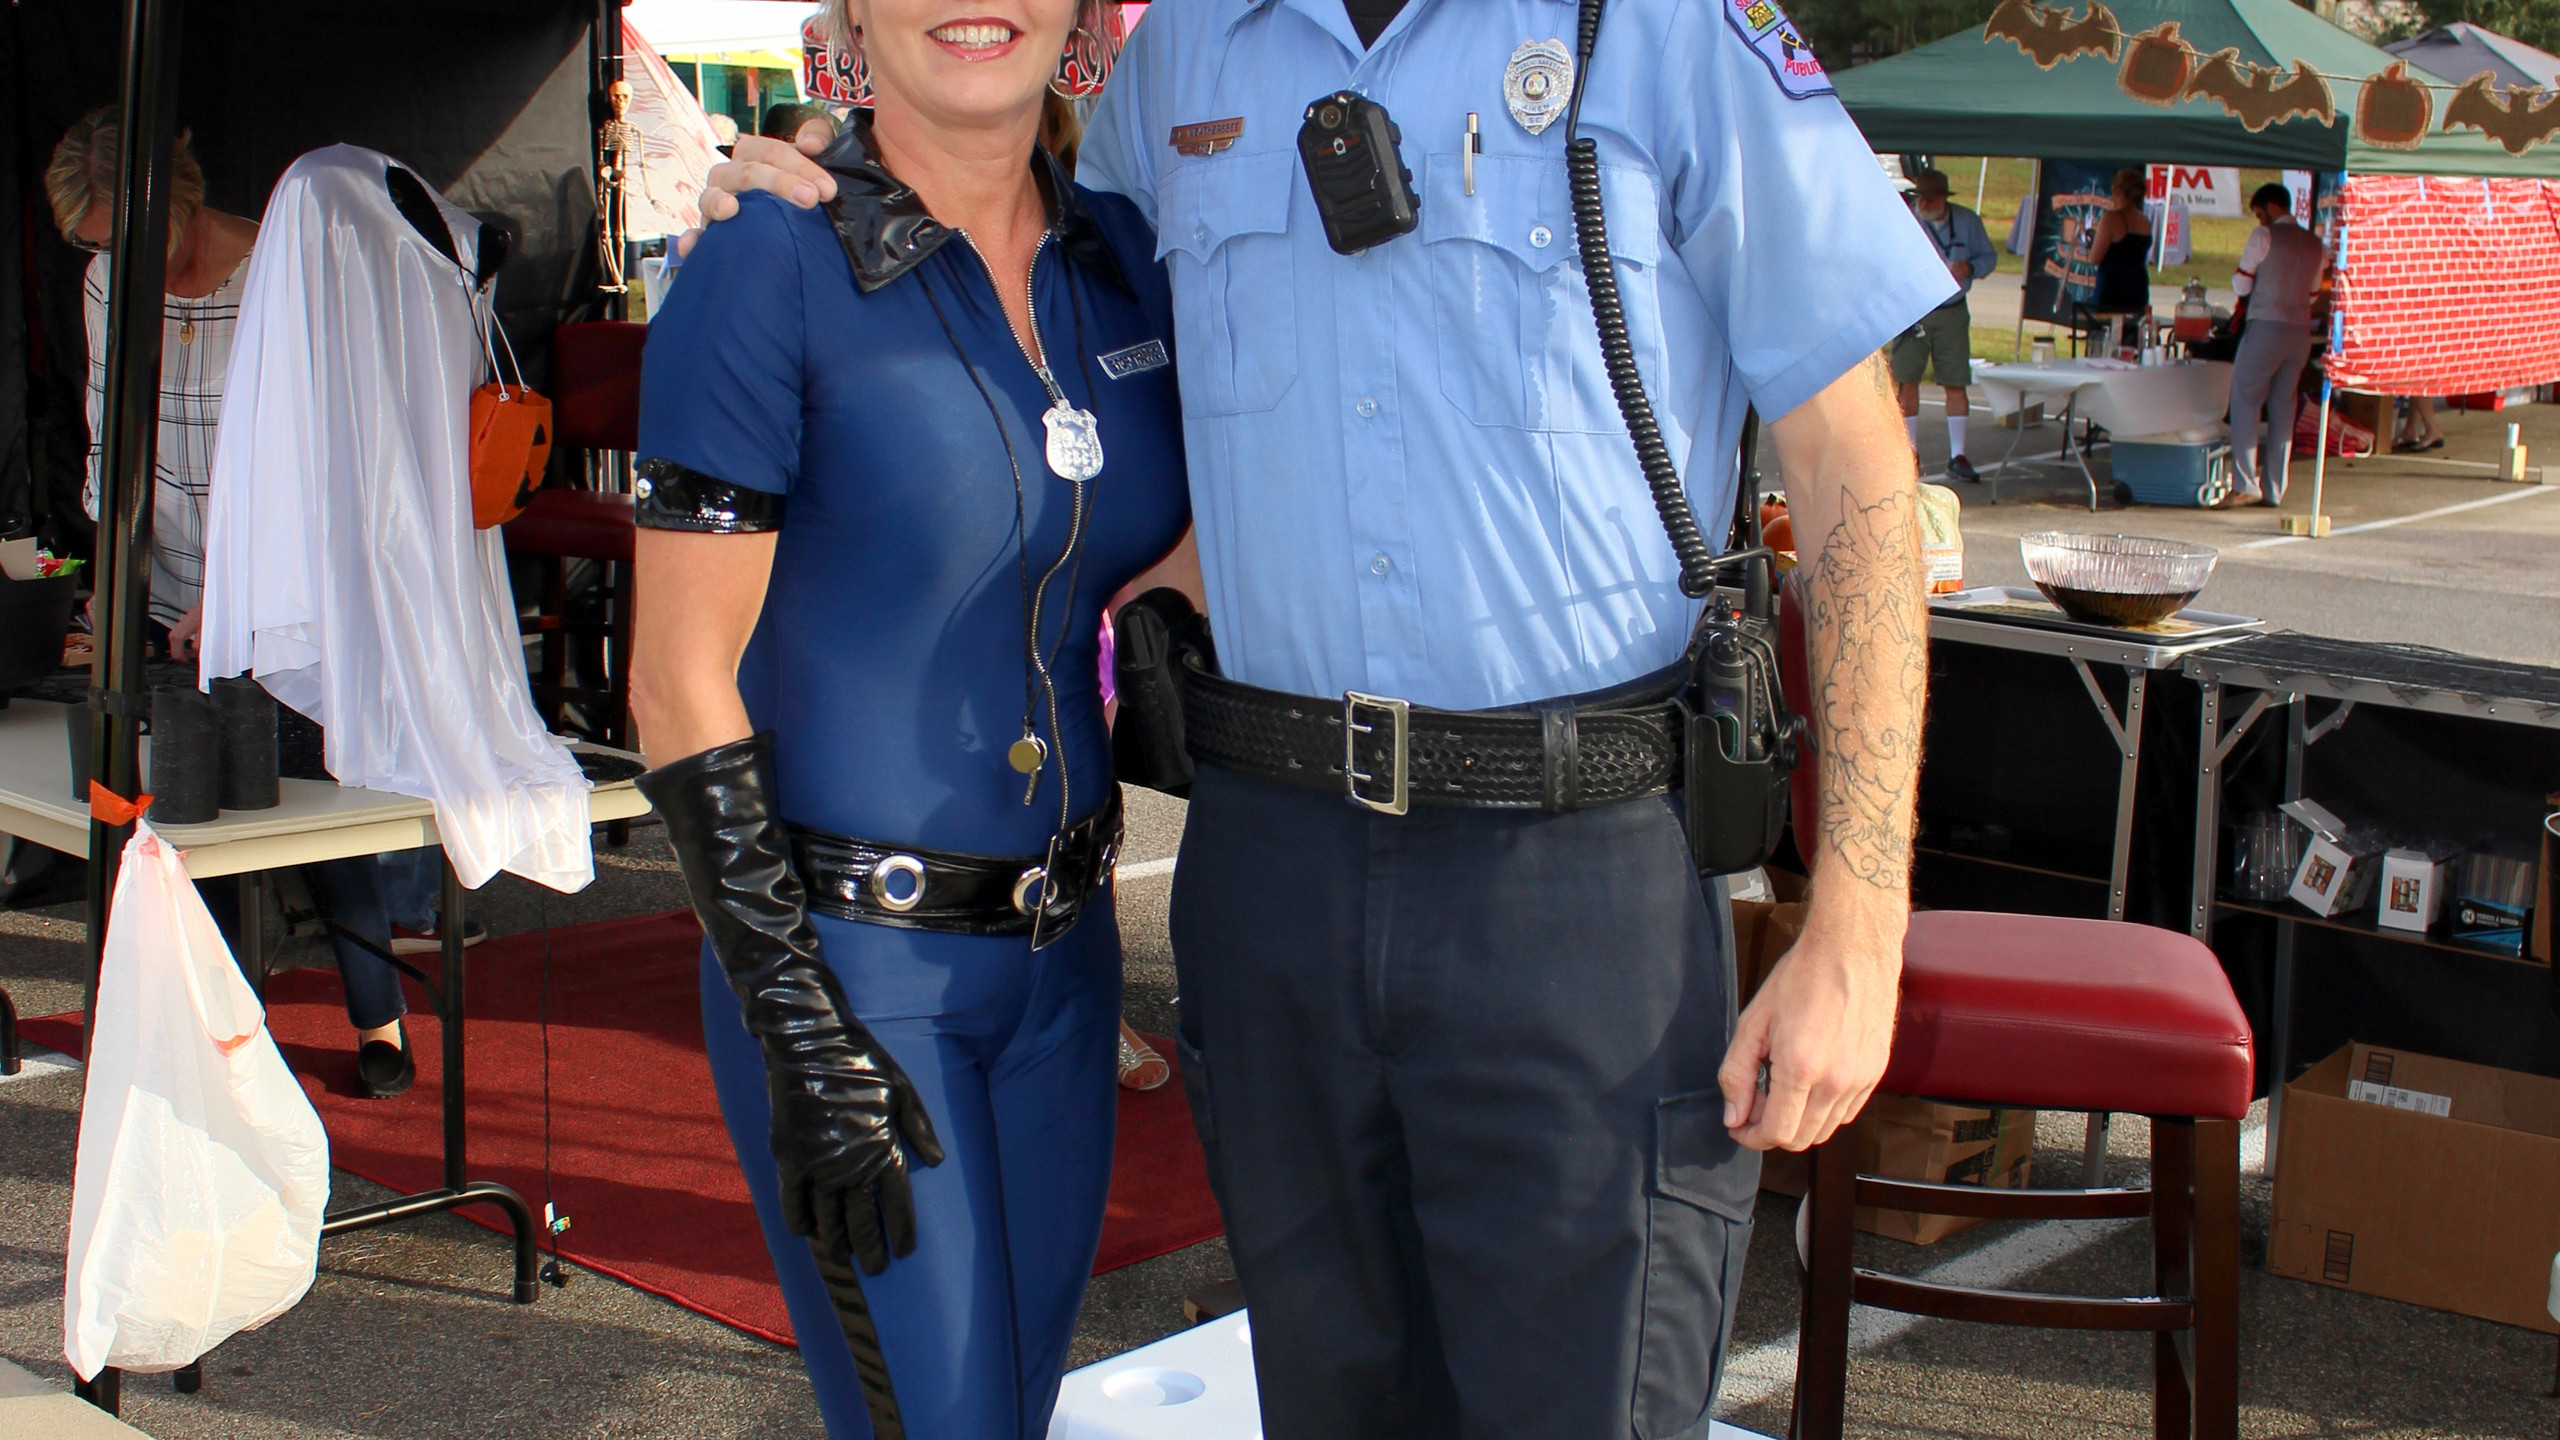 SPCA Operations Manager Michelle Floyd with City of Aiken Animal Control Officer Chris Weathersbee